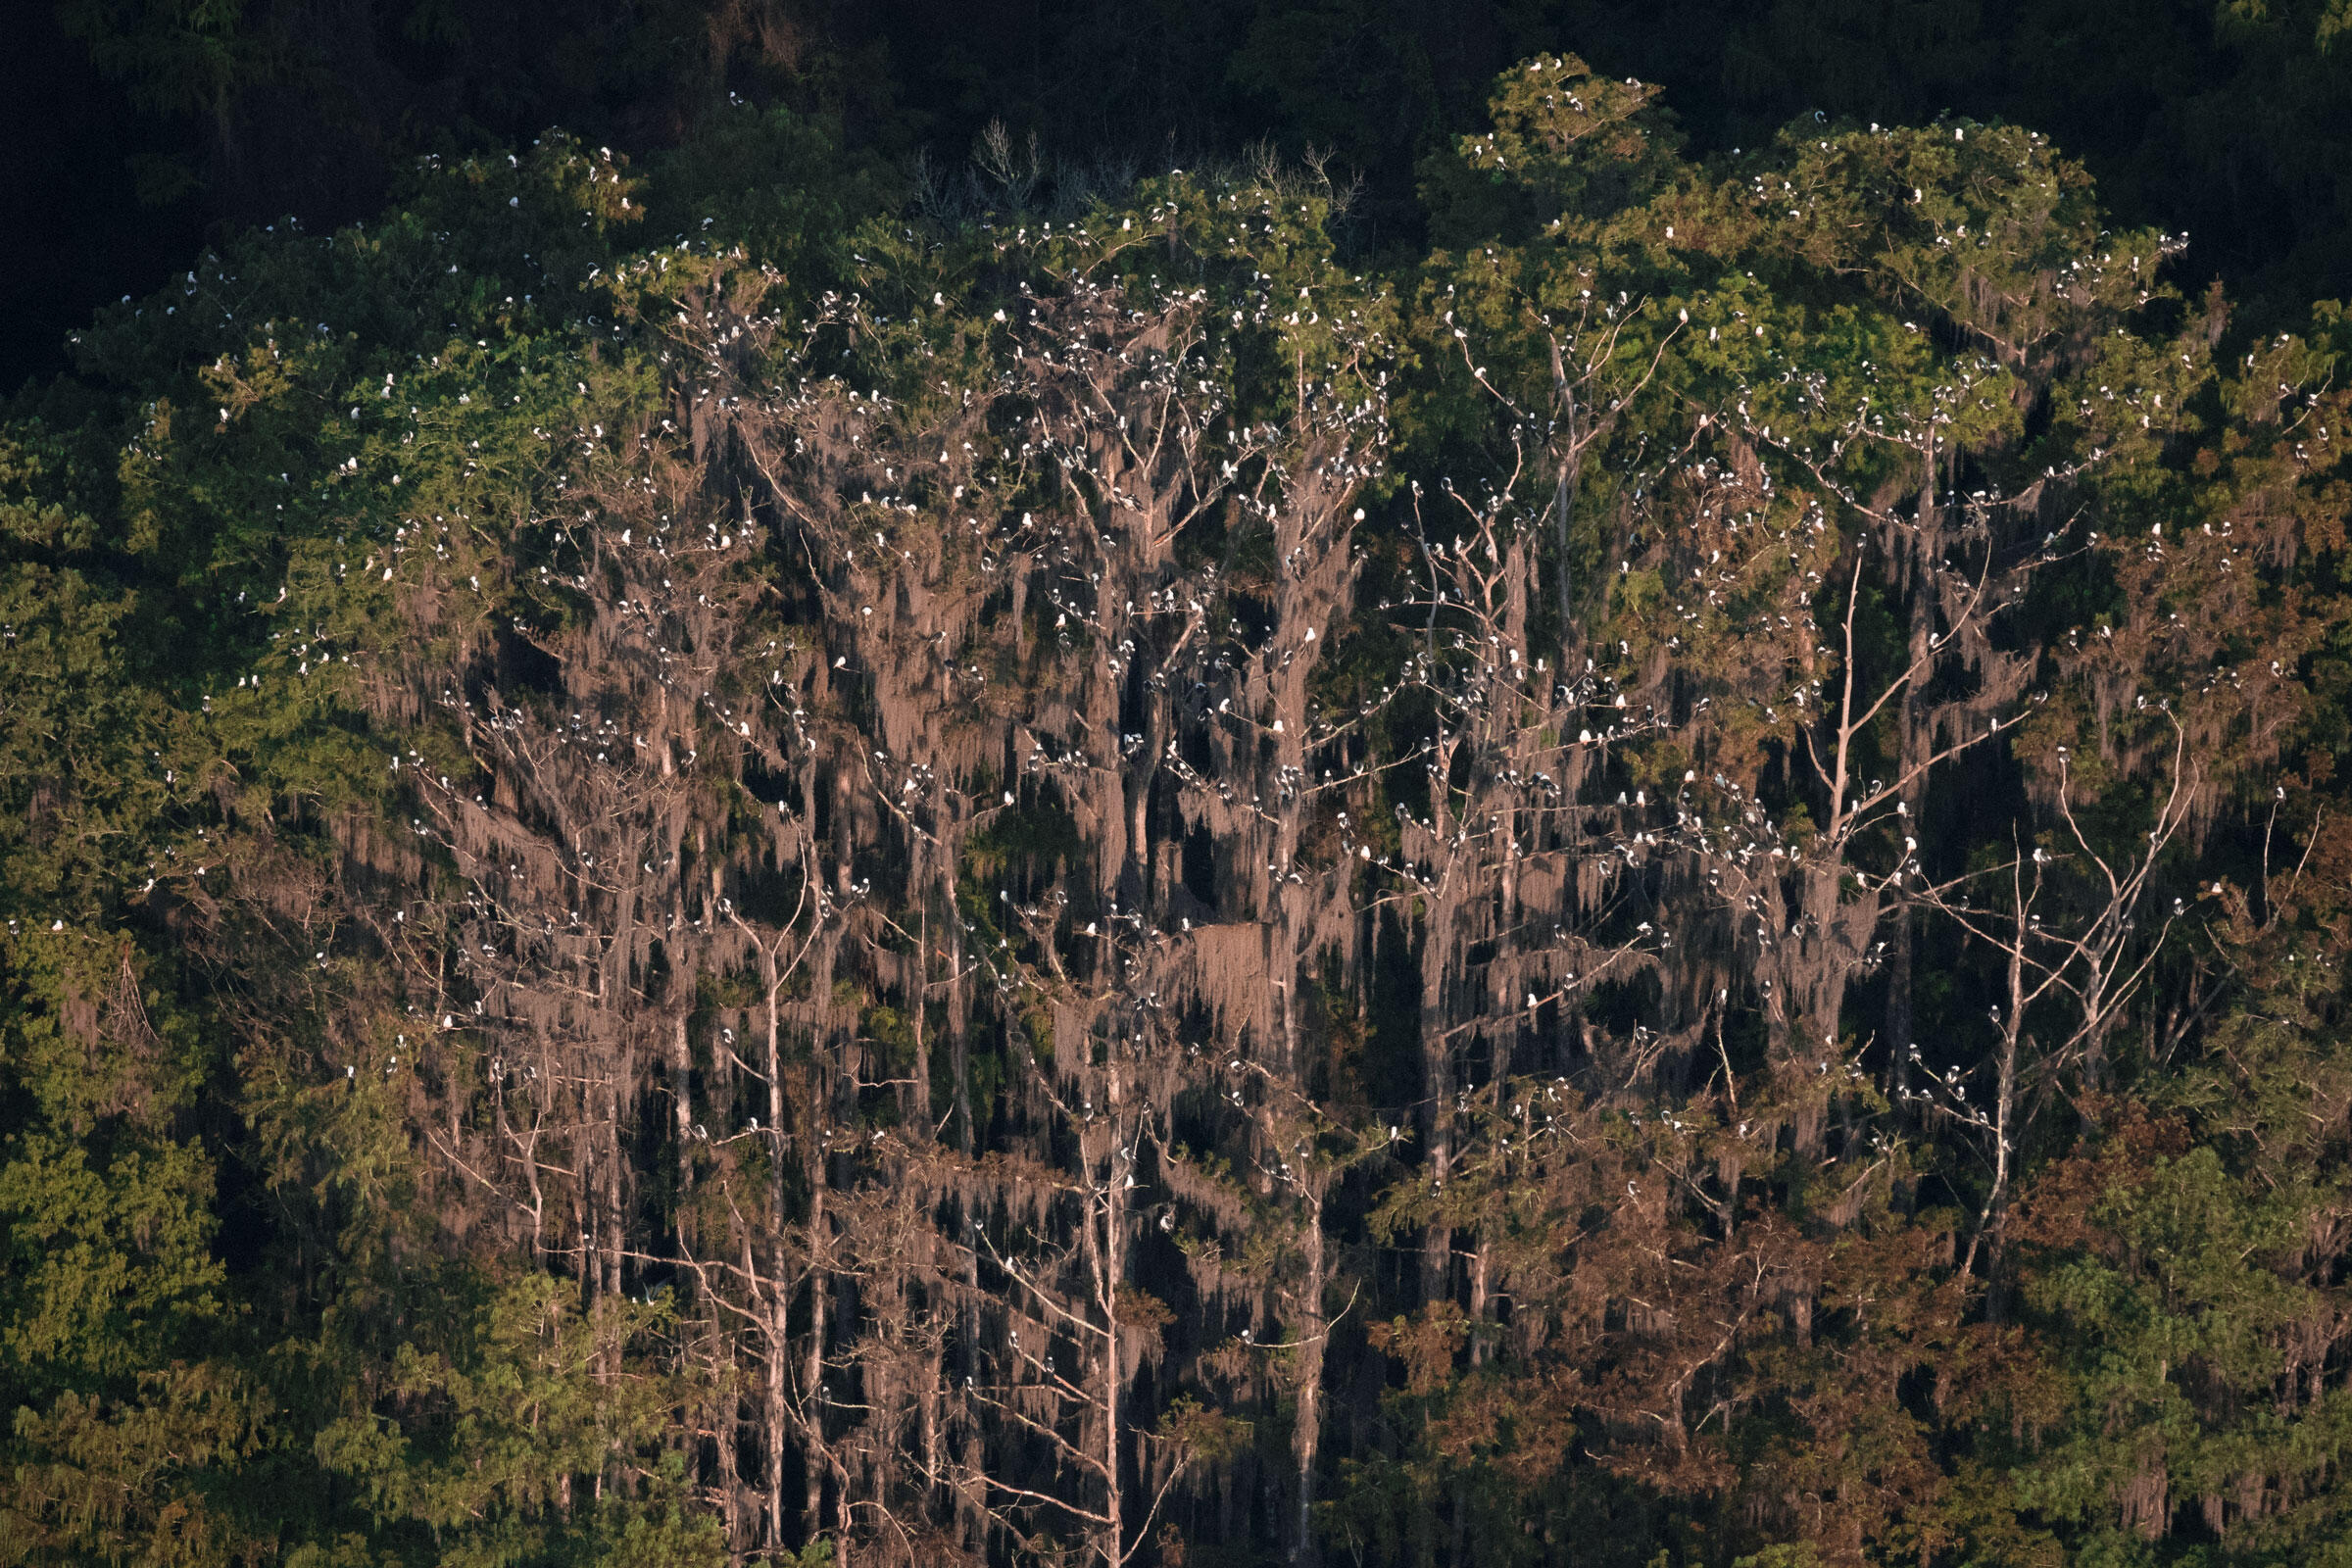 Swallow-tailed Kite's roost in a cypress dome near Florida's Lake Okeechobee. Mac Stone